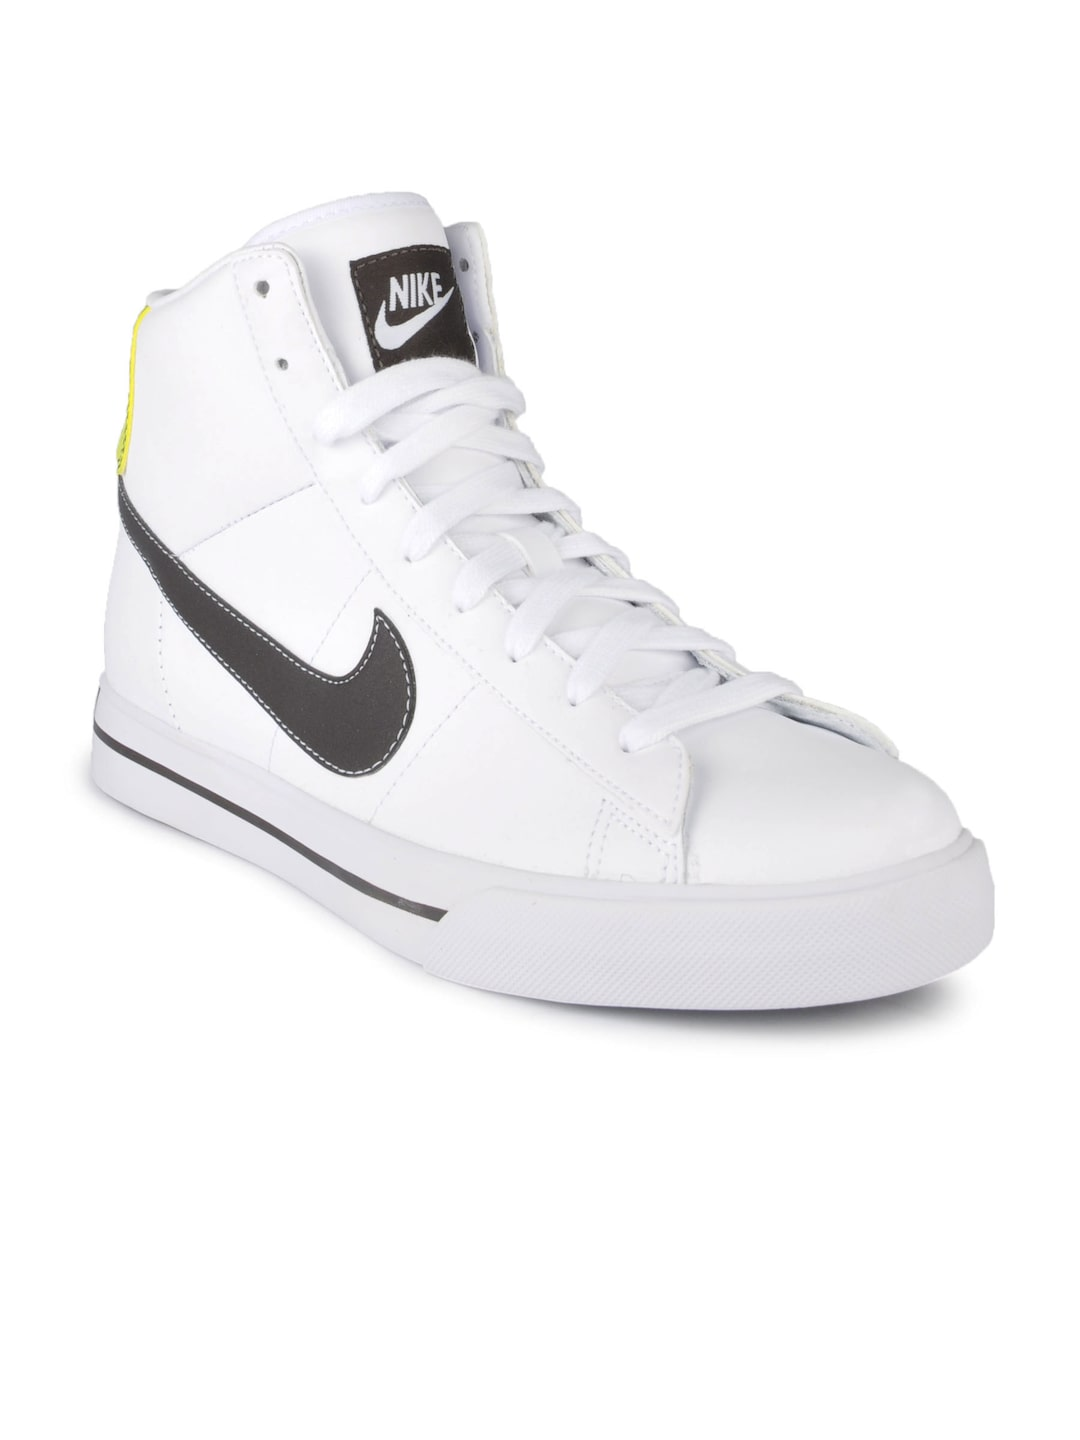 Nike 354701-119 Men Sweet Classic High White Casual Shoes- Price in India